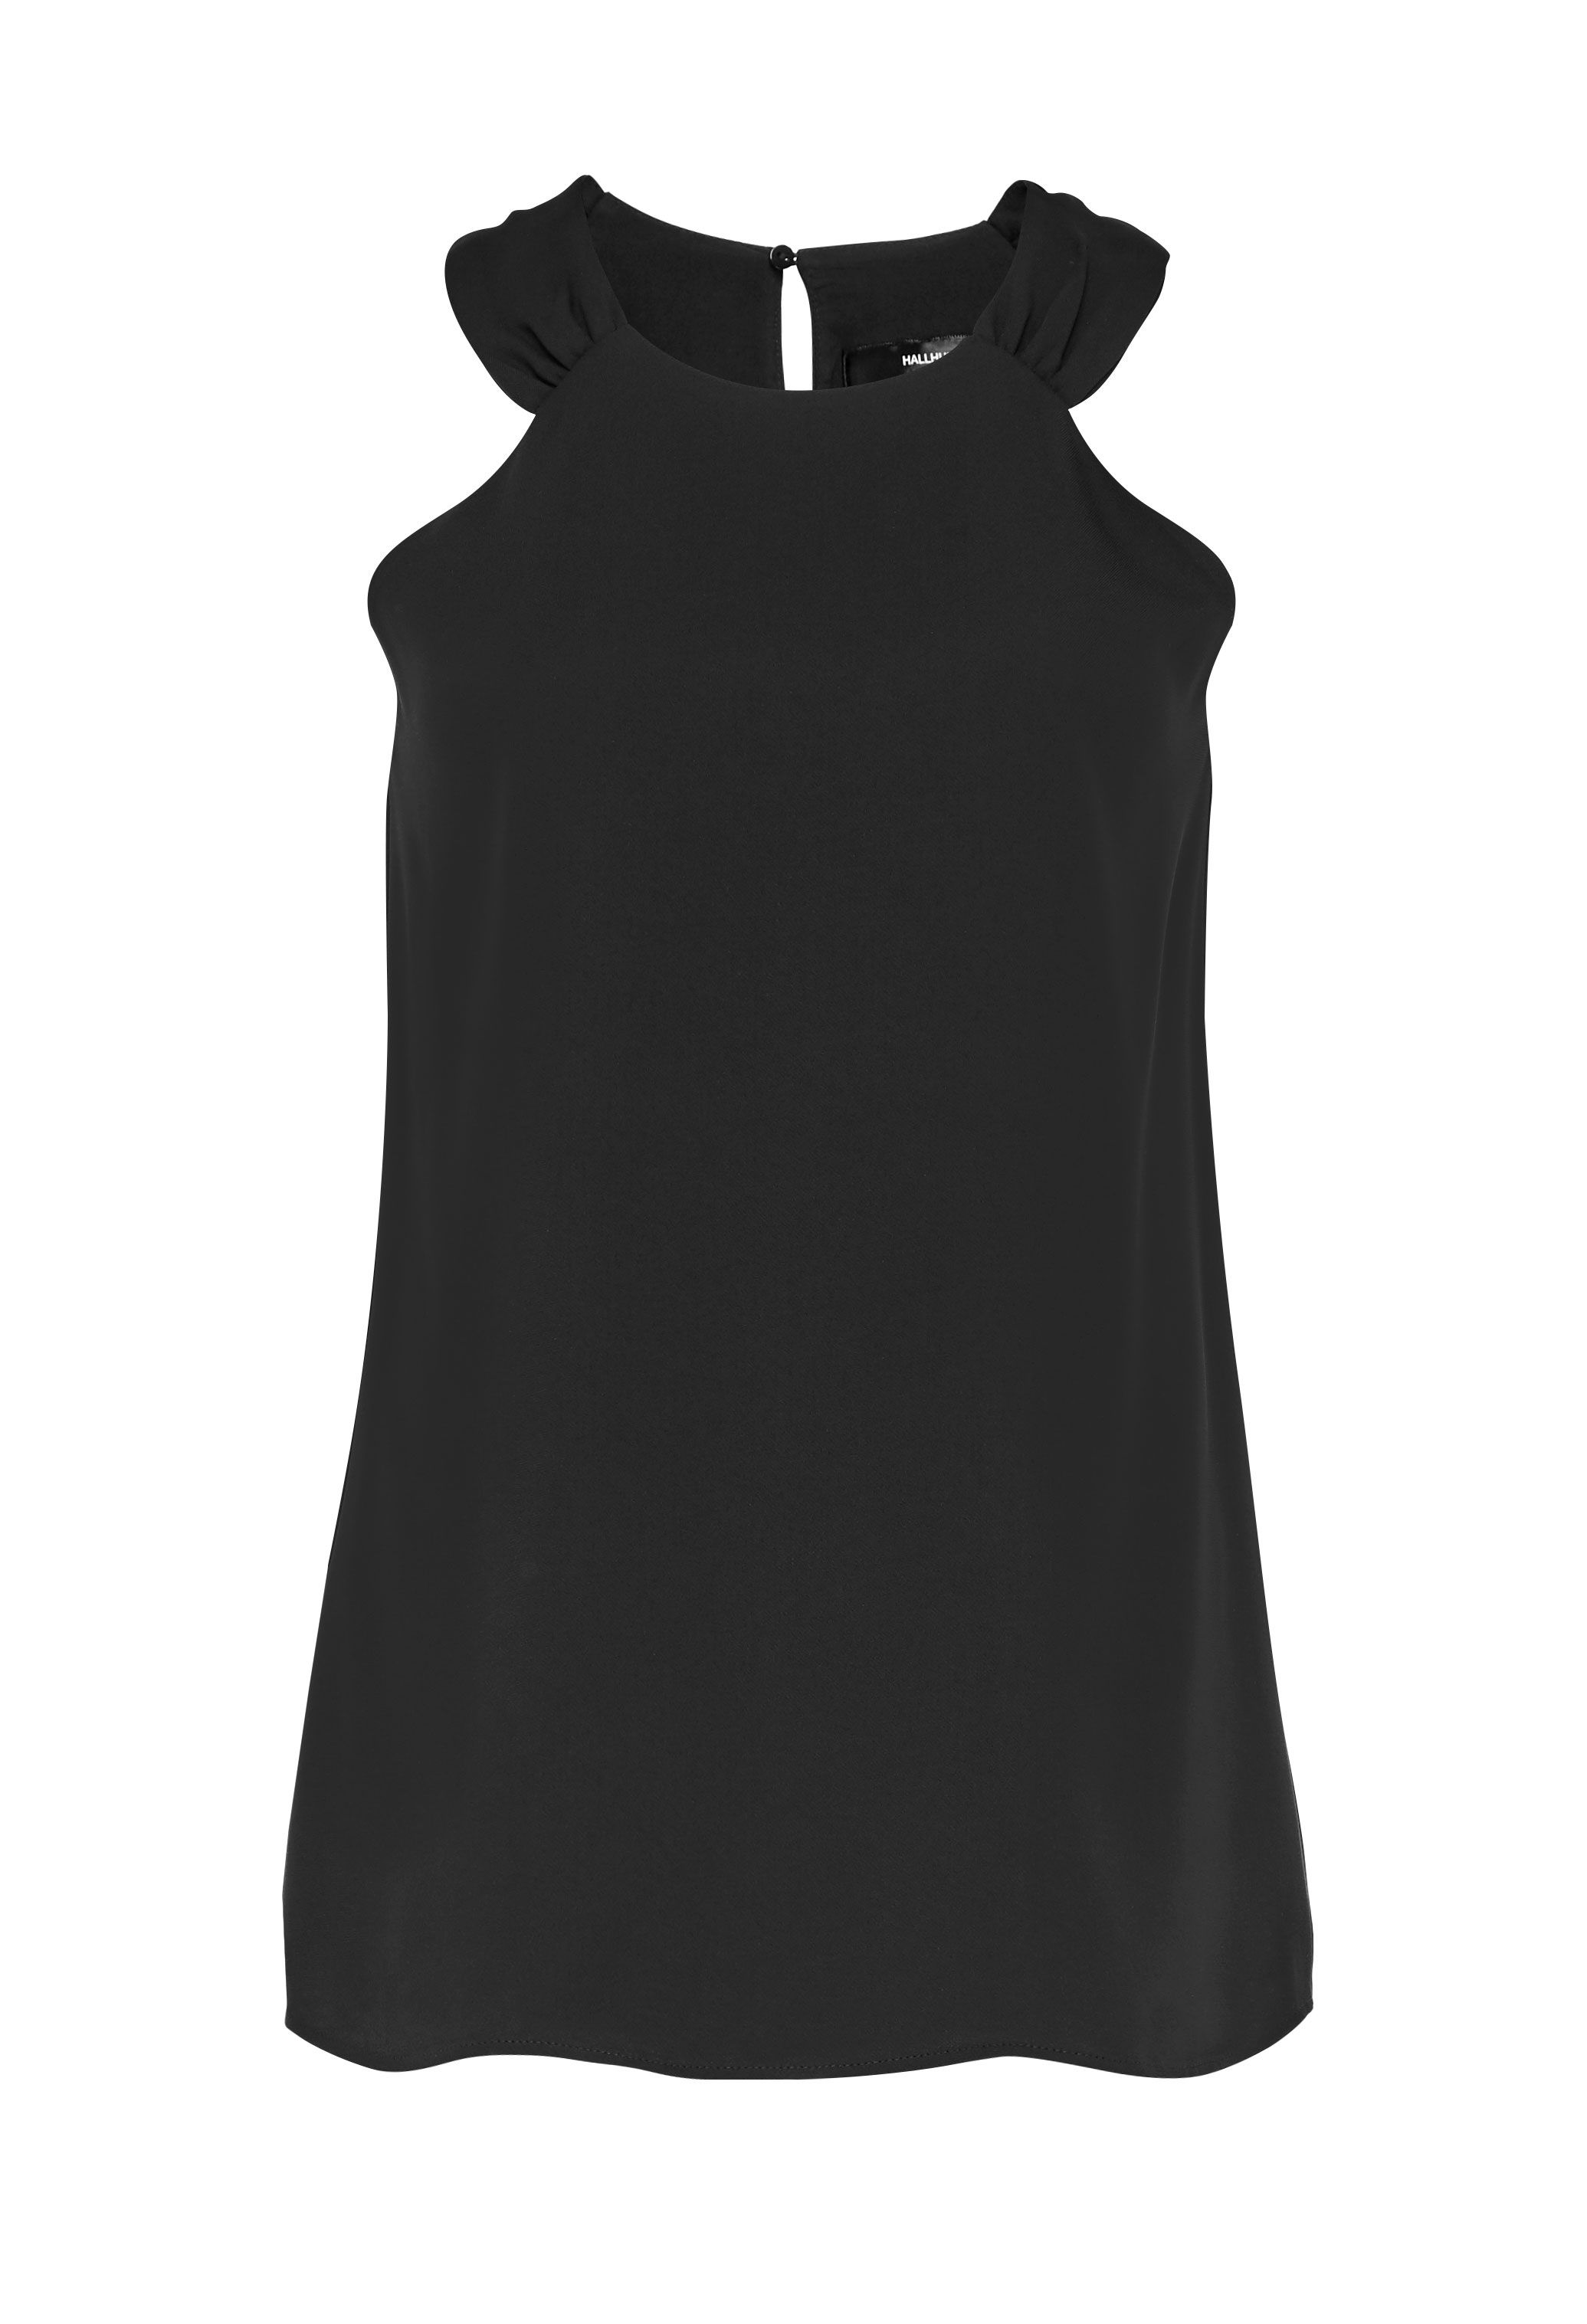 Hallhuber A-Line Top, Black